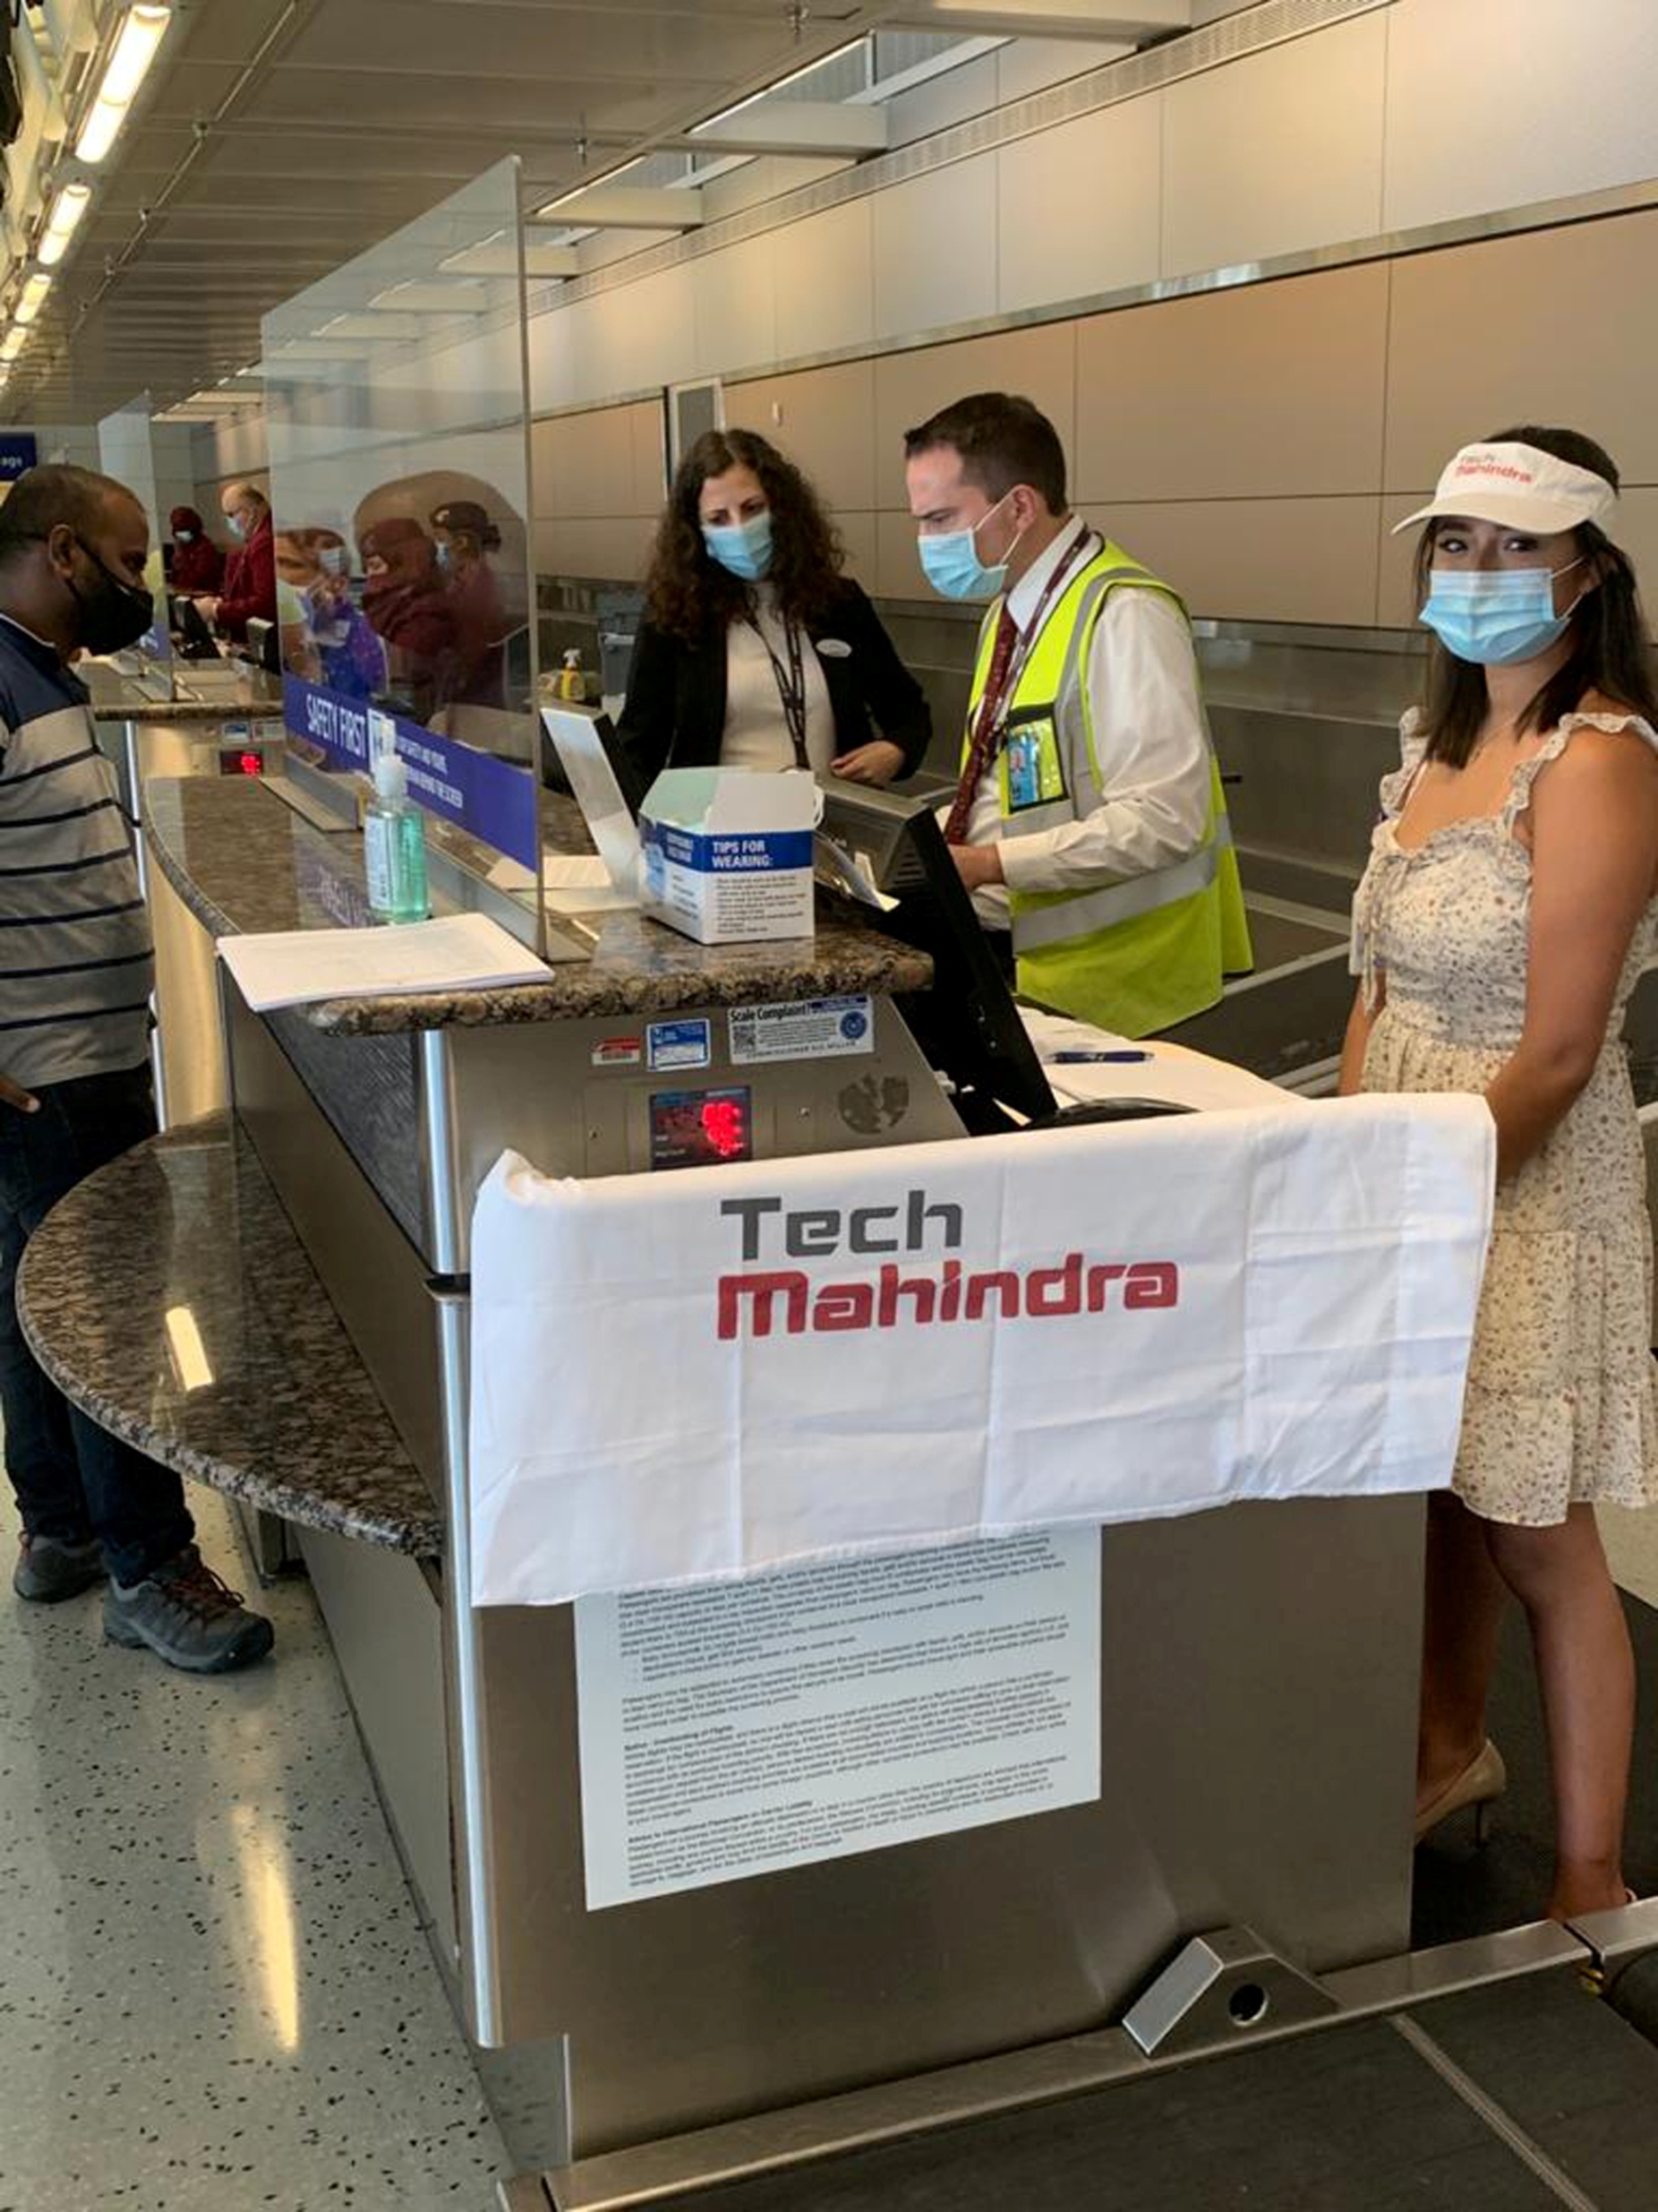 Tech Mahindra Facilitates Return of Over 210 Employees and their Dependents from the US